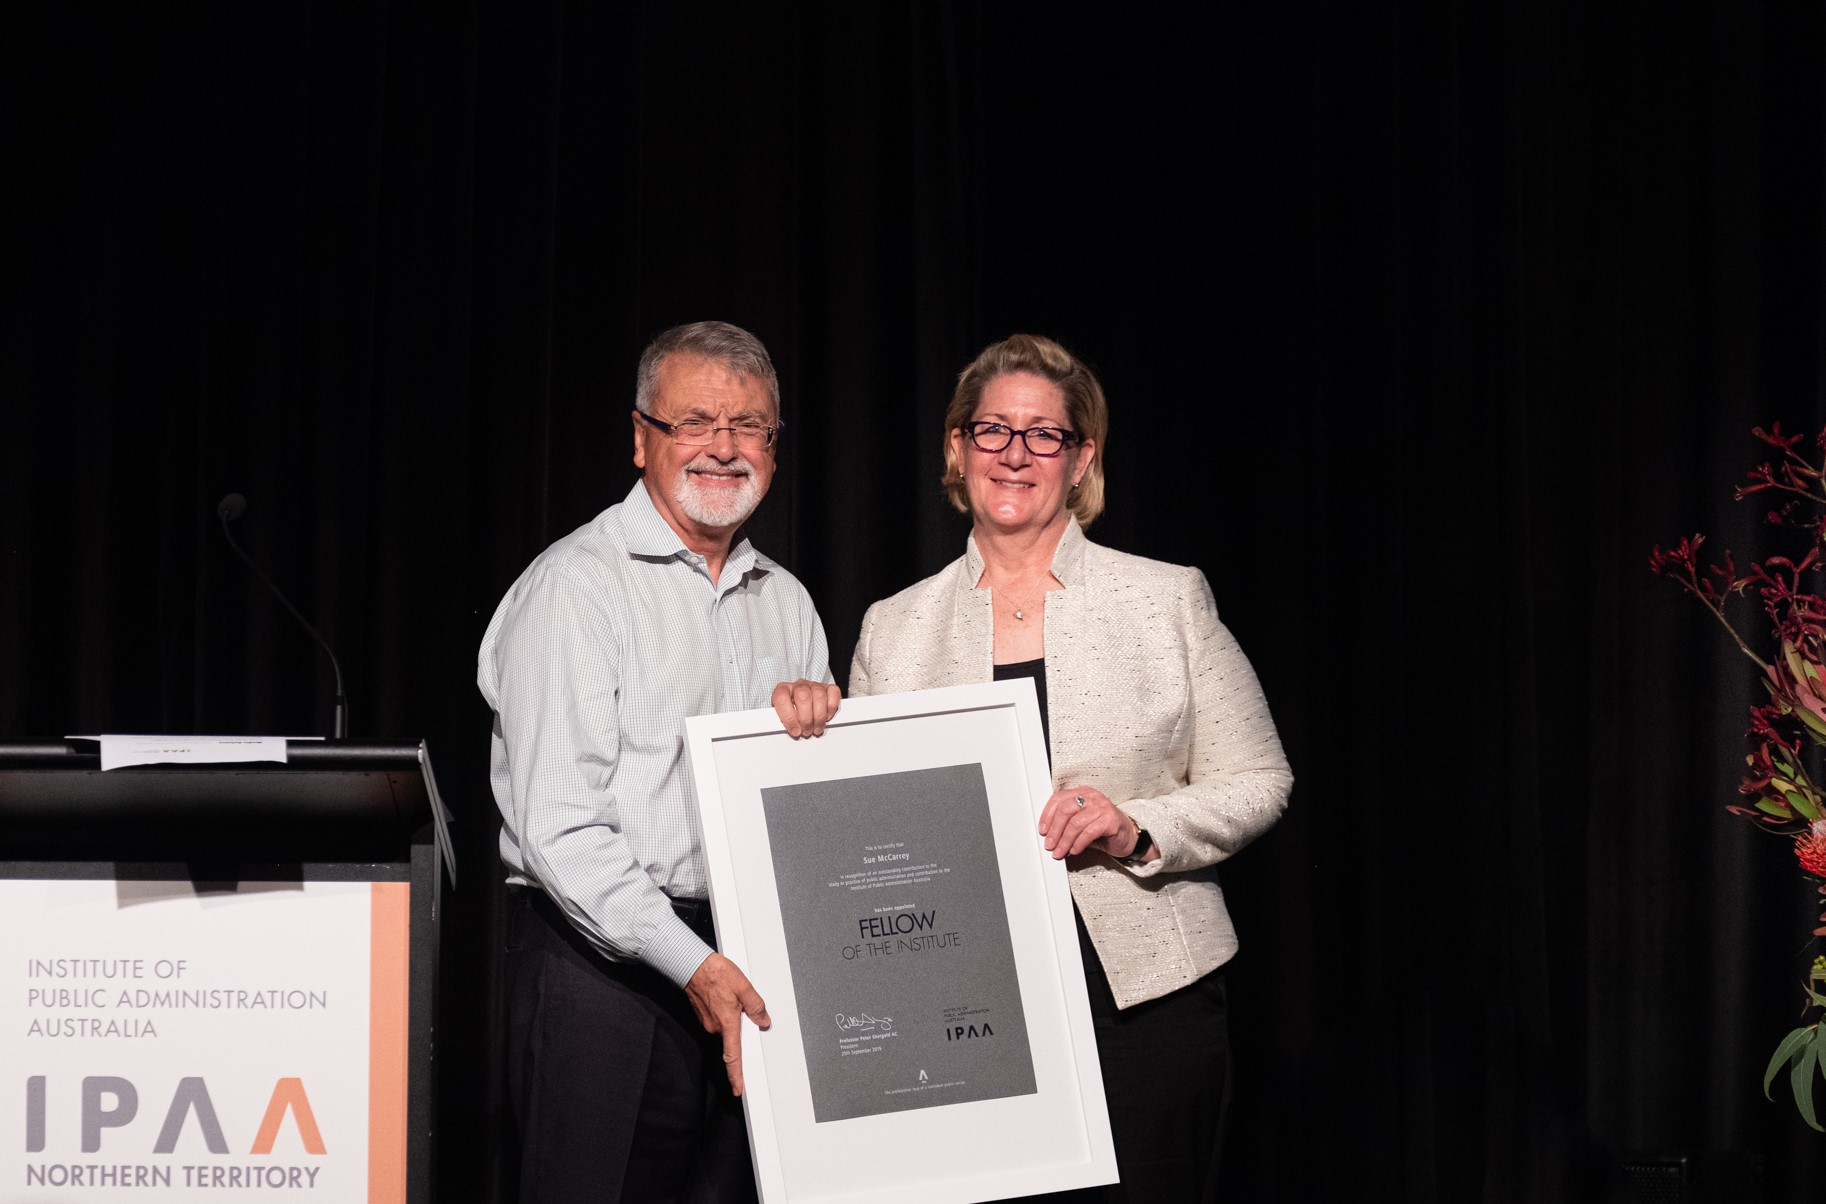 Professor Peter Shergold AC with new National Fellow, Ms Sue McCarrey